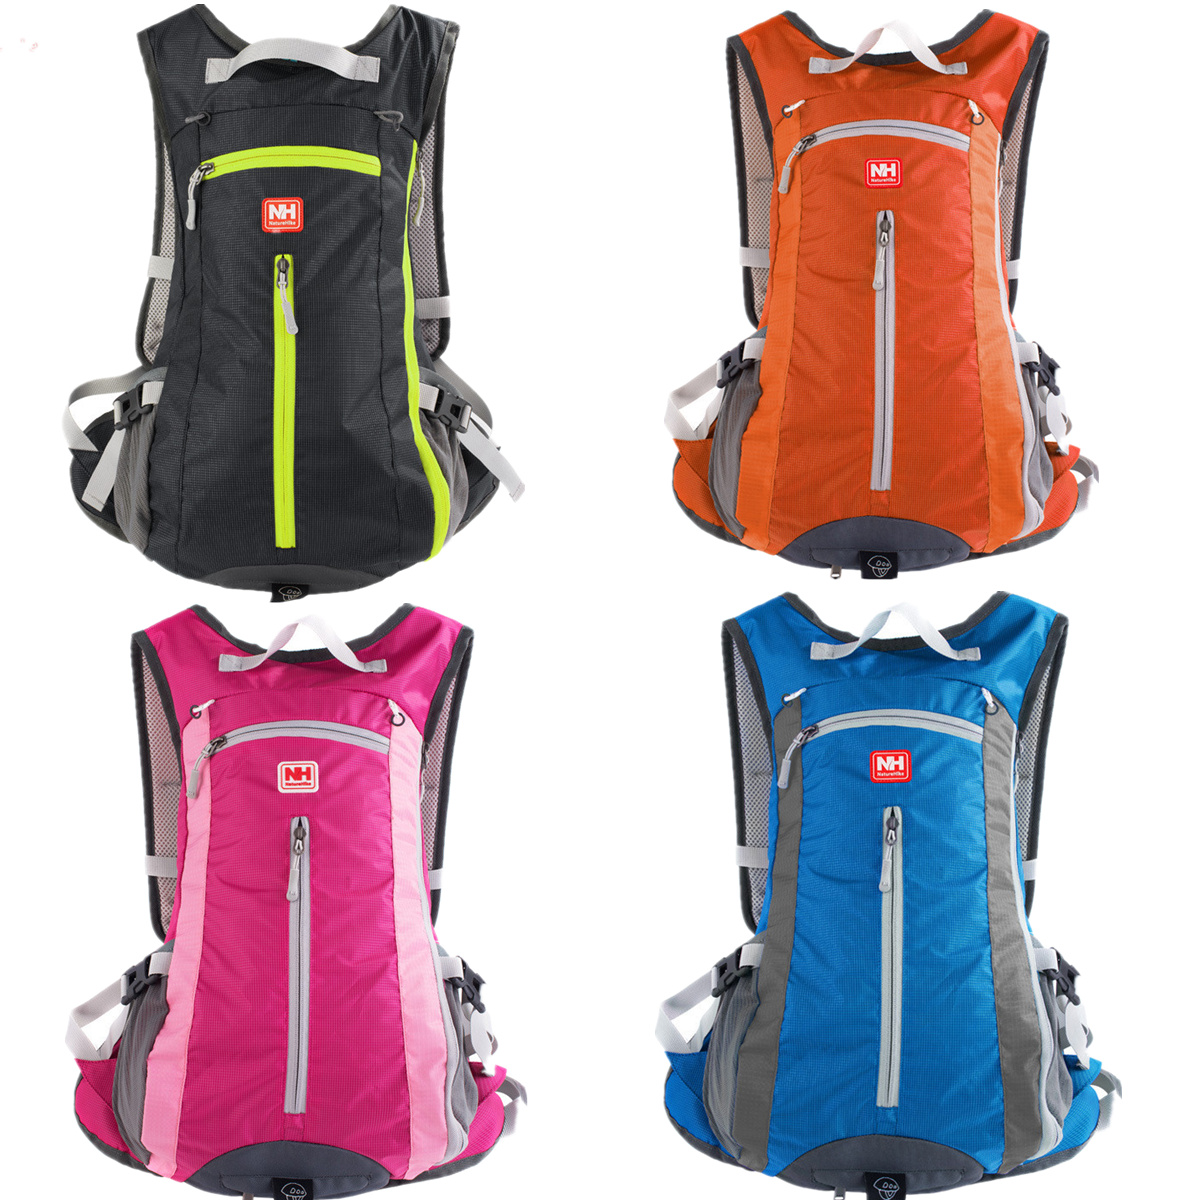 15L Unisex Classic Waterproof Travel Backpack Hiking Bag Outdoor Camping Sports Hiking Folding Pack by